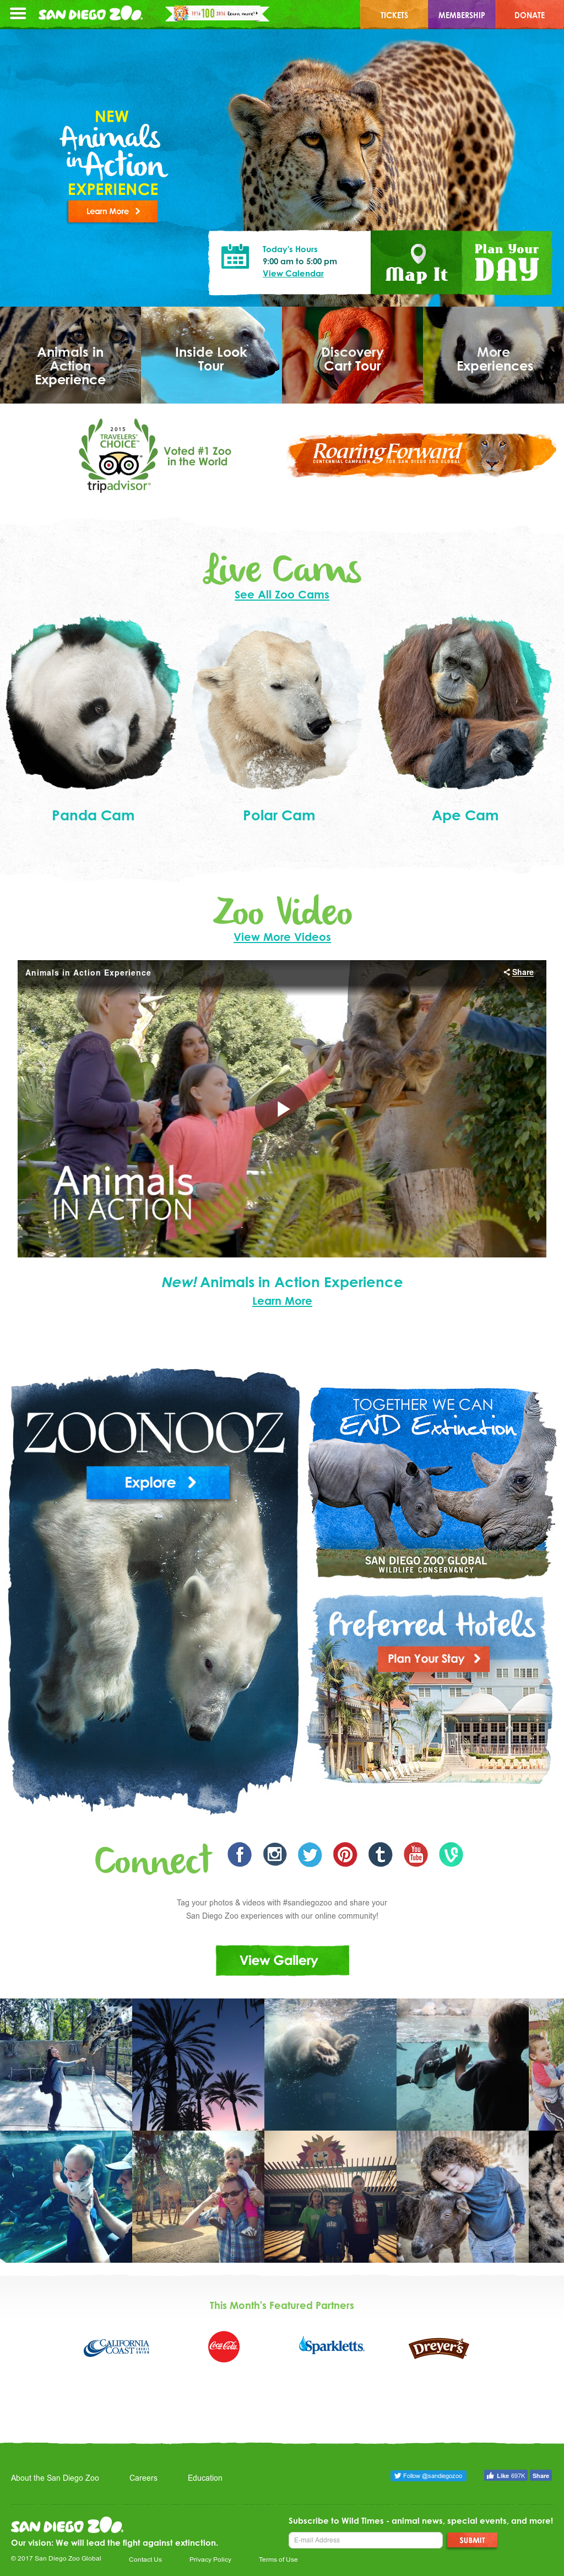 San Diego Zoo Competitors, Revenue and Employees - Owler